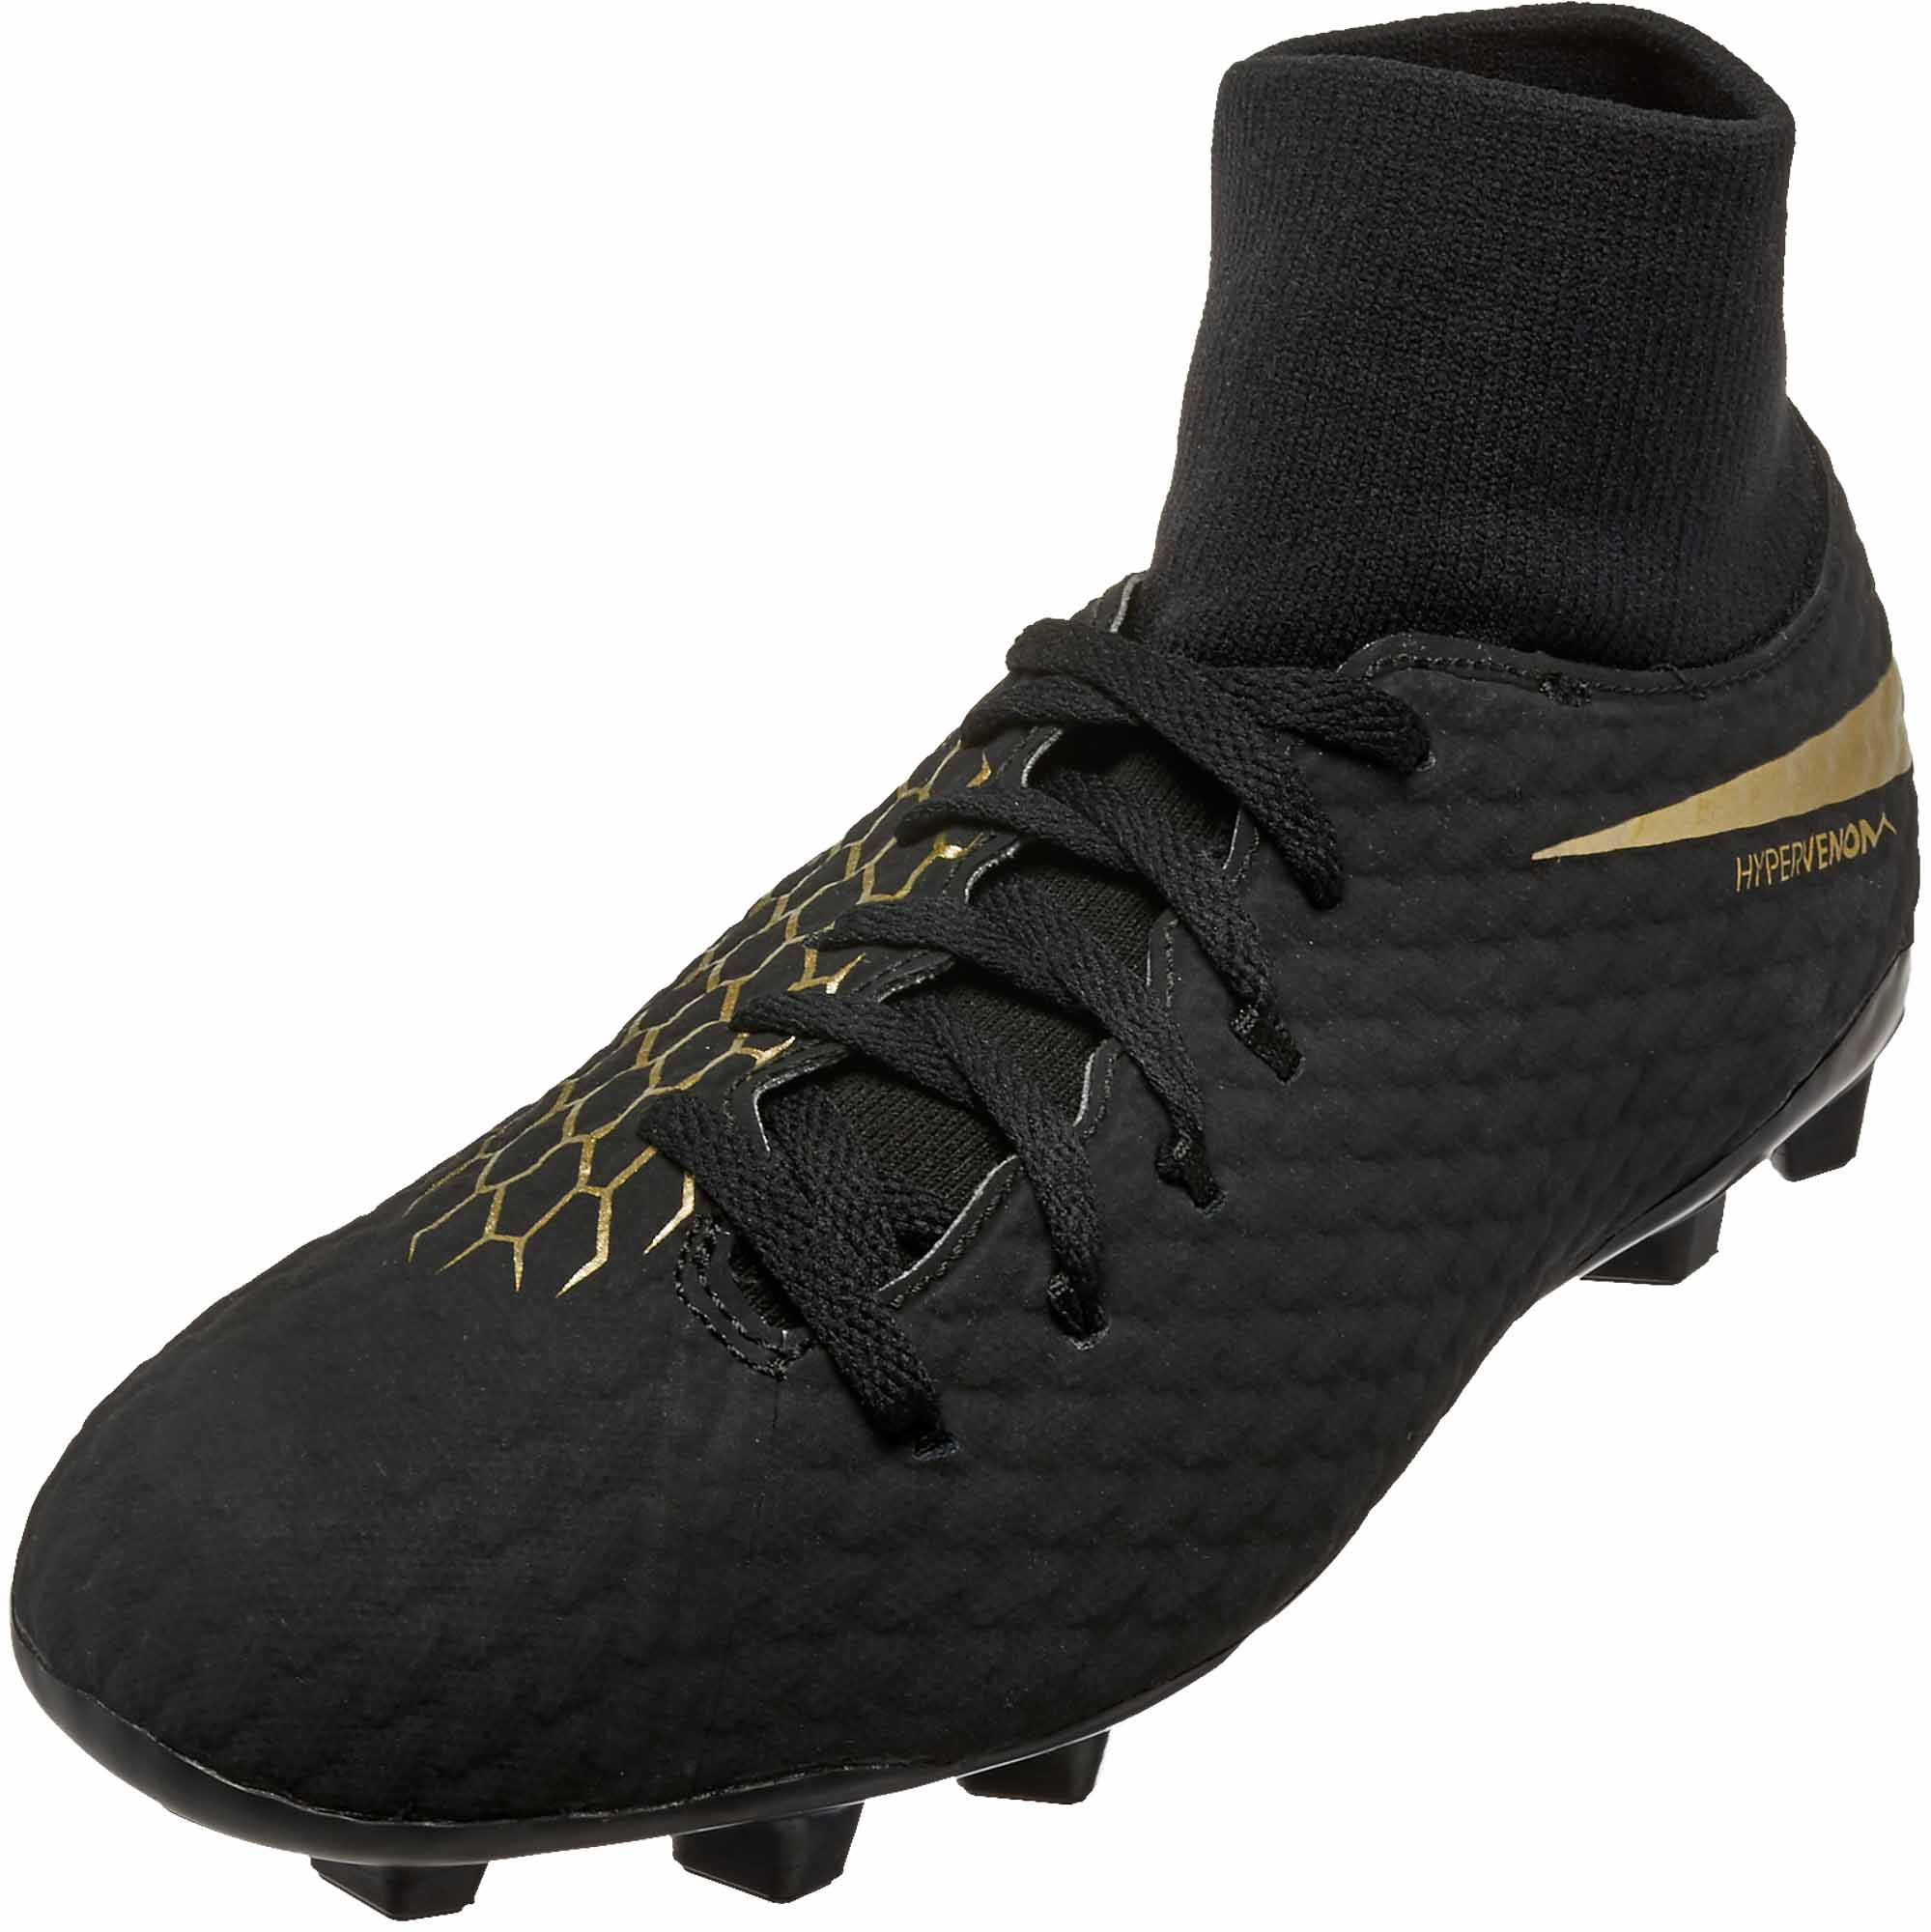 054542956 Nike Hypervenom Phantom III Academy DF FG – Youth – Black Metallic Vivid  Gold